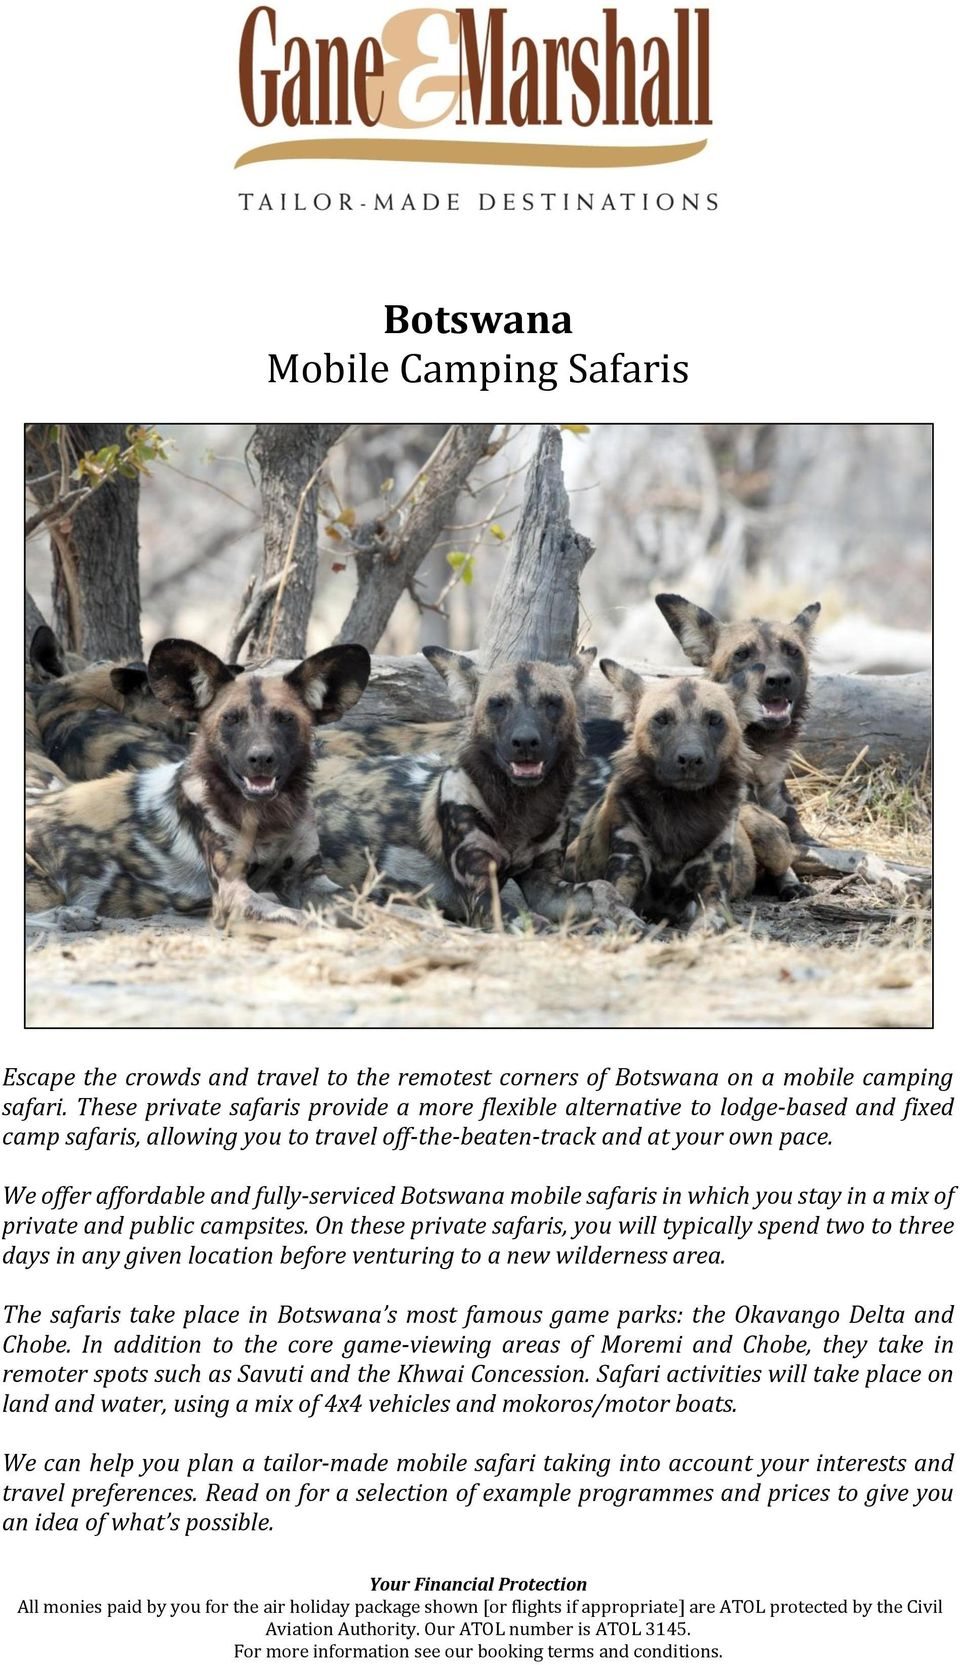 We offer affordable and fully-serviced Botswana mobile safaris in which you stay in a mix of private and public campsites.